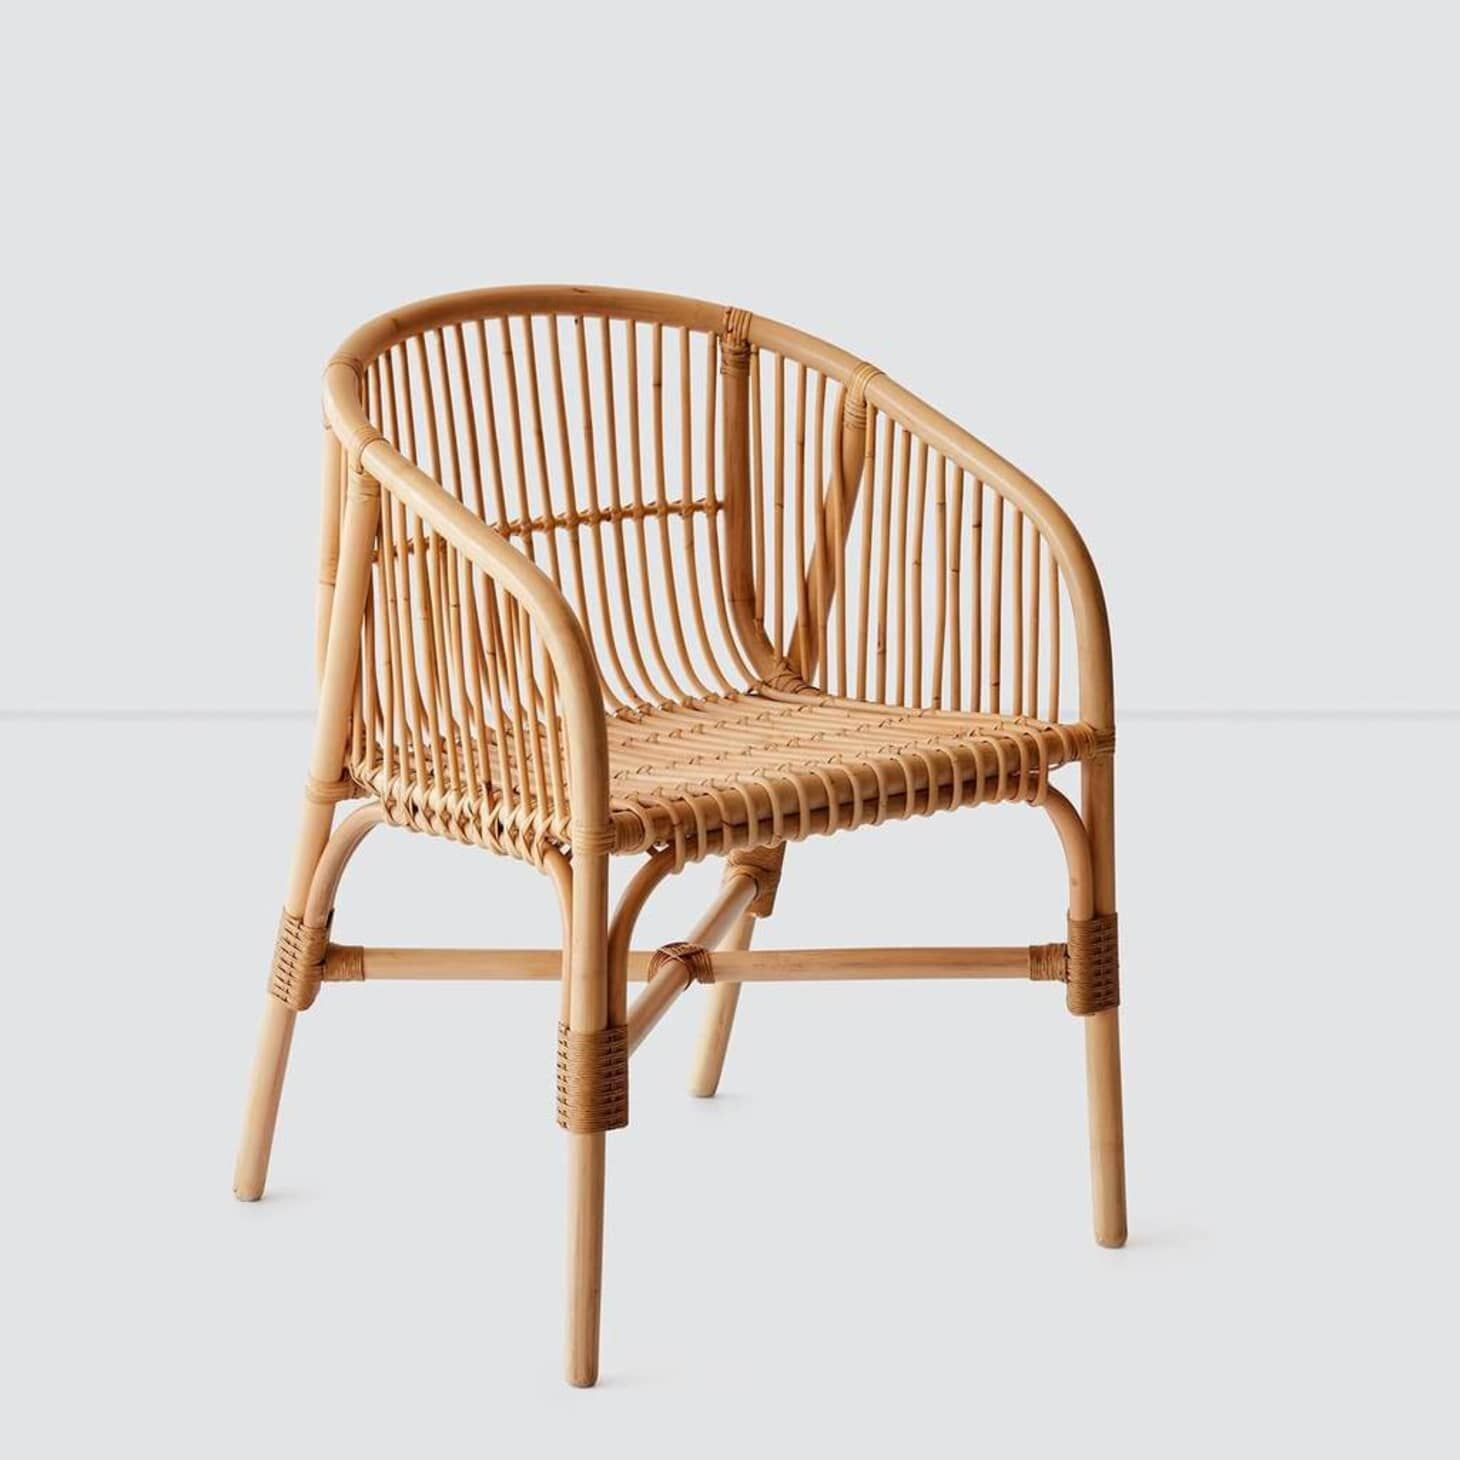 Fine Jakarta Rattan Dining Chair Design Kitchen In 2019 Caraccident5 Cool Chair Designs And Ideas Caraccident5Info